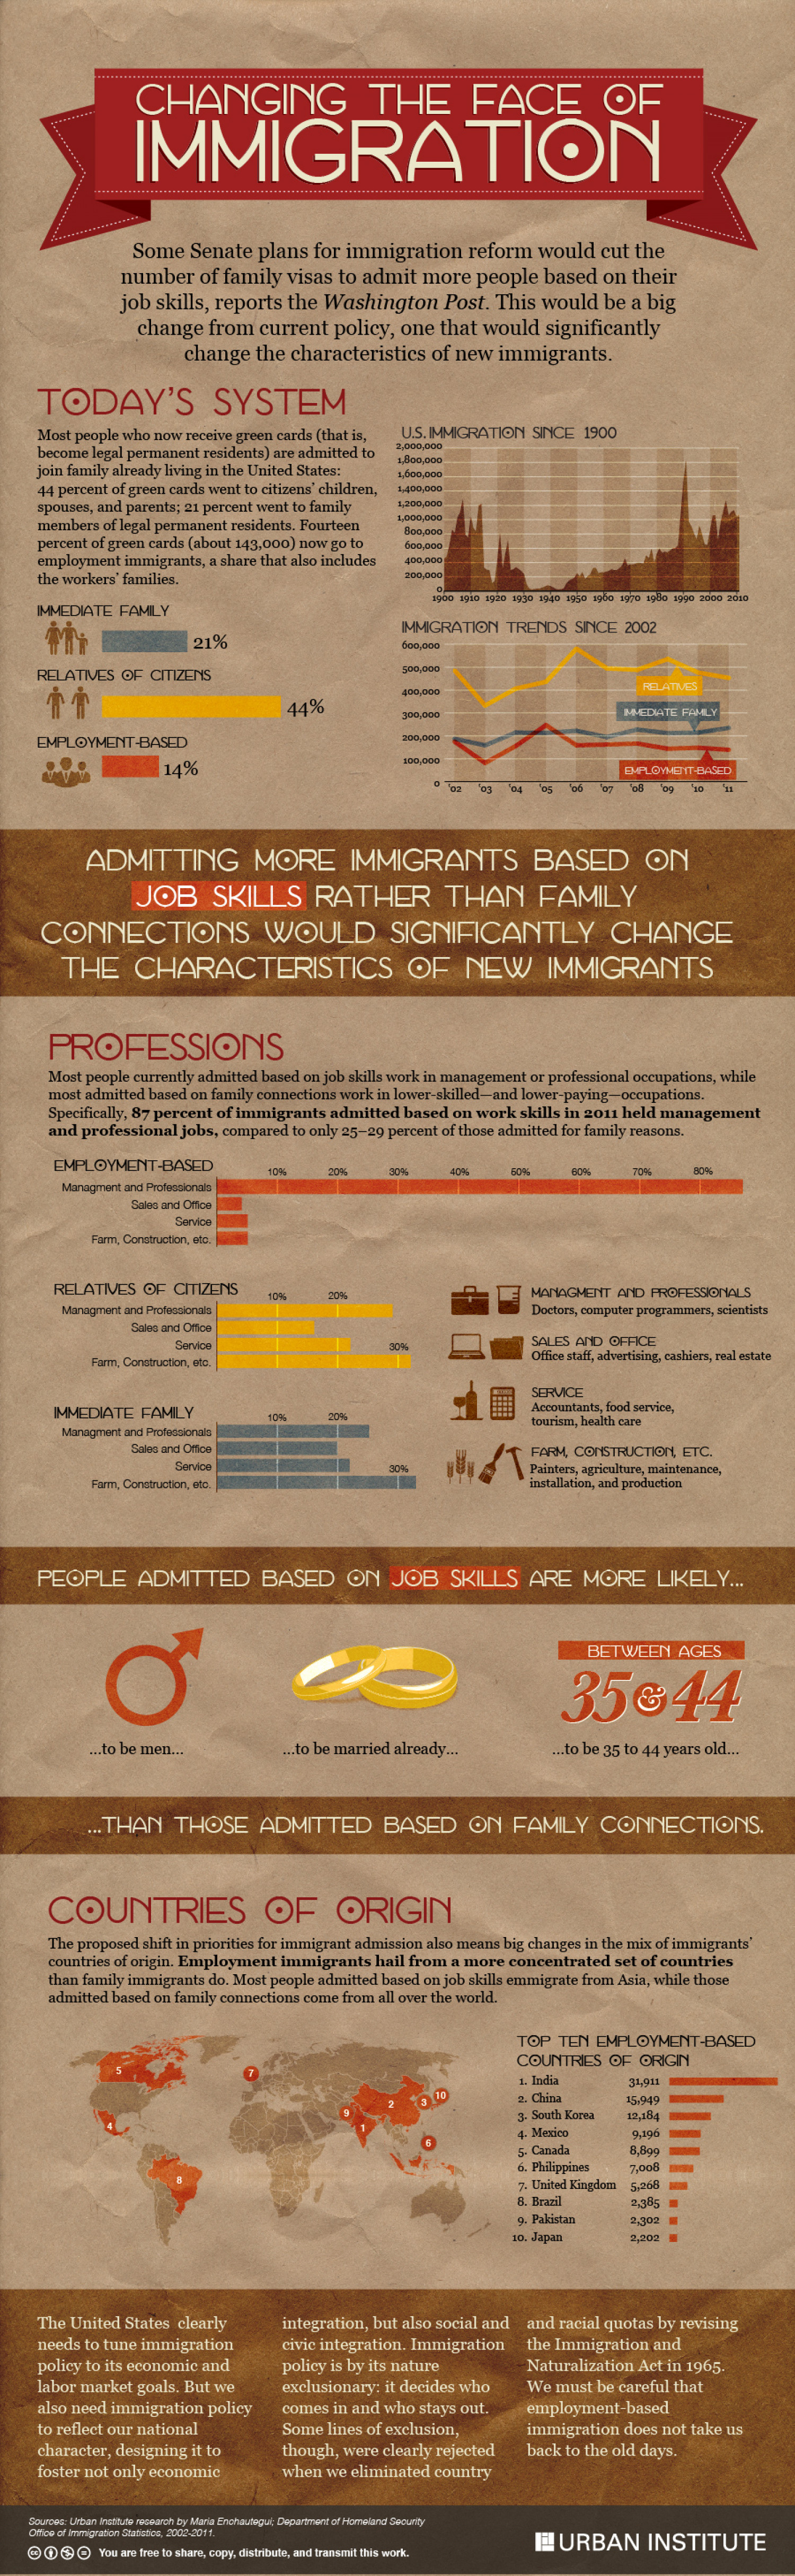 Changing the Face of Immigration Infographic